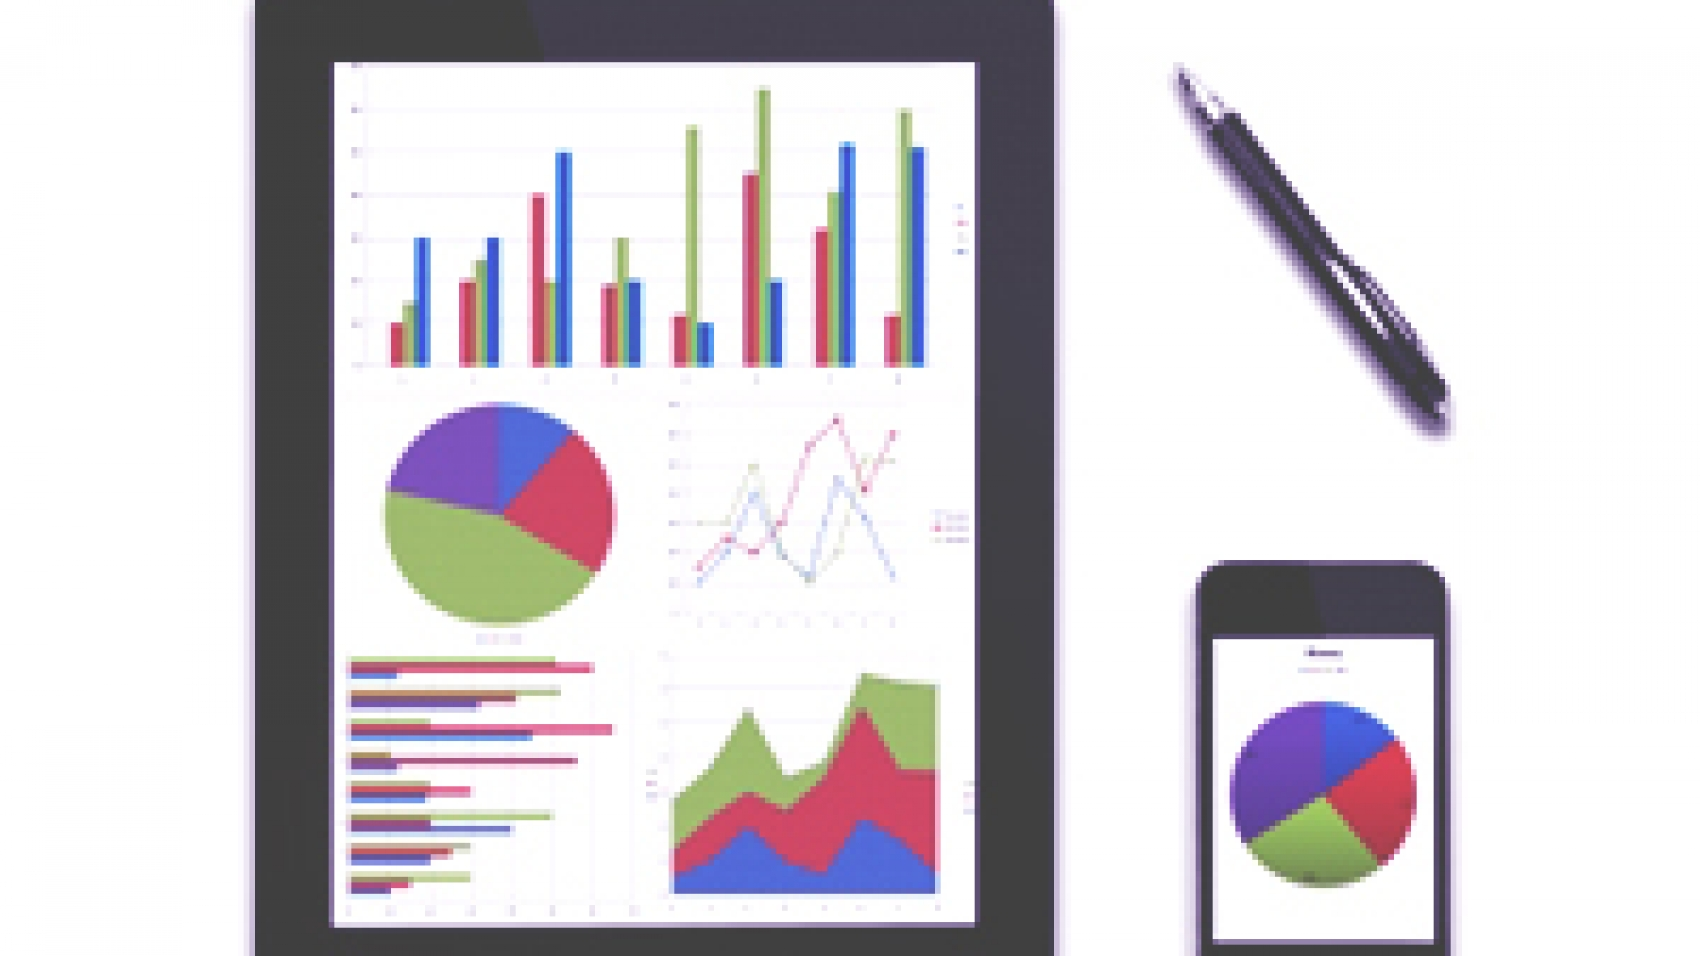 tablet and iPhone showing bar, graph, and pie charts